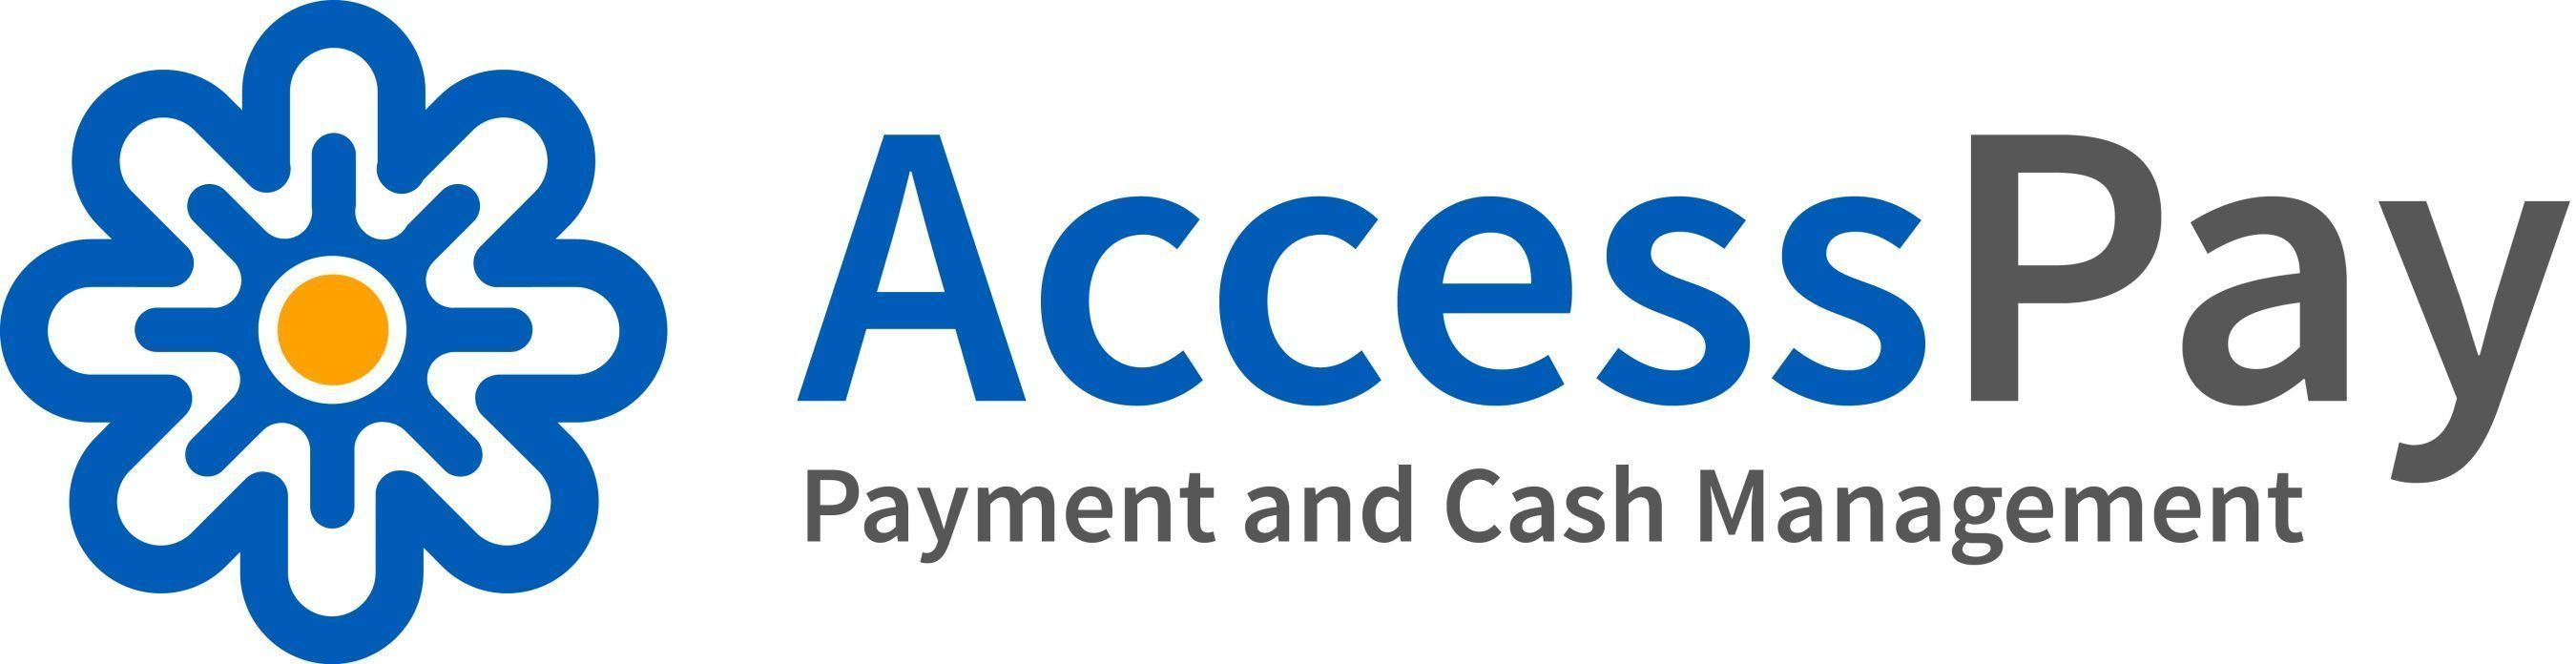 AccessPay Appoints Technology Leader Anish Kapoor as New CEO